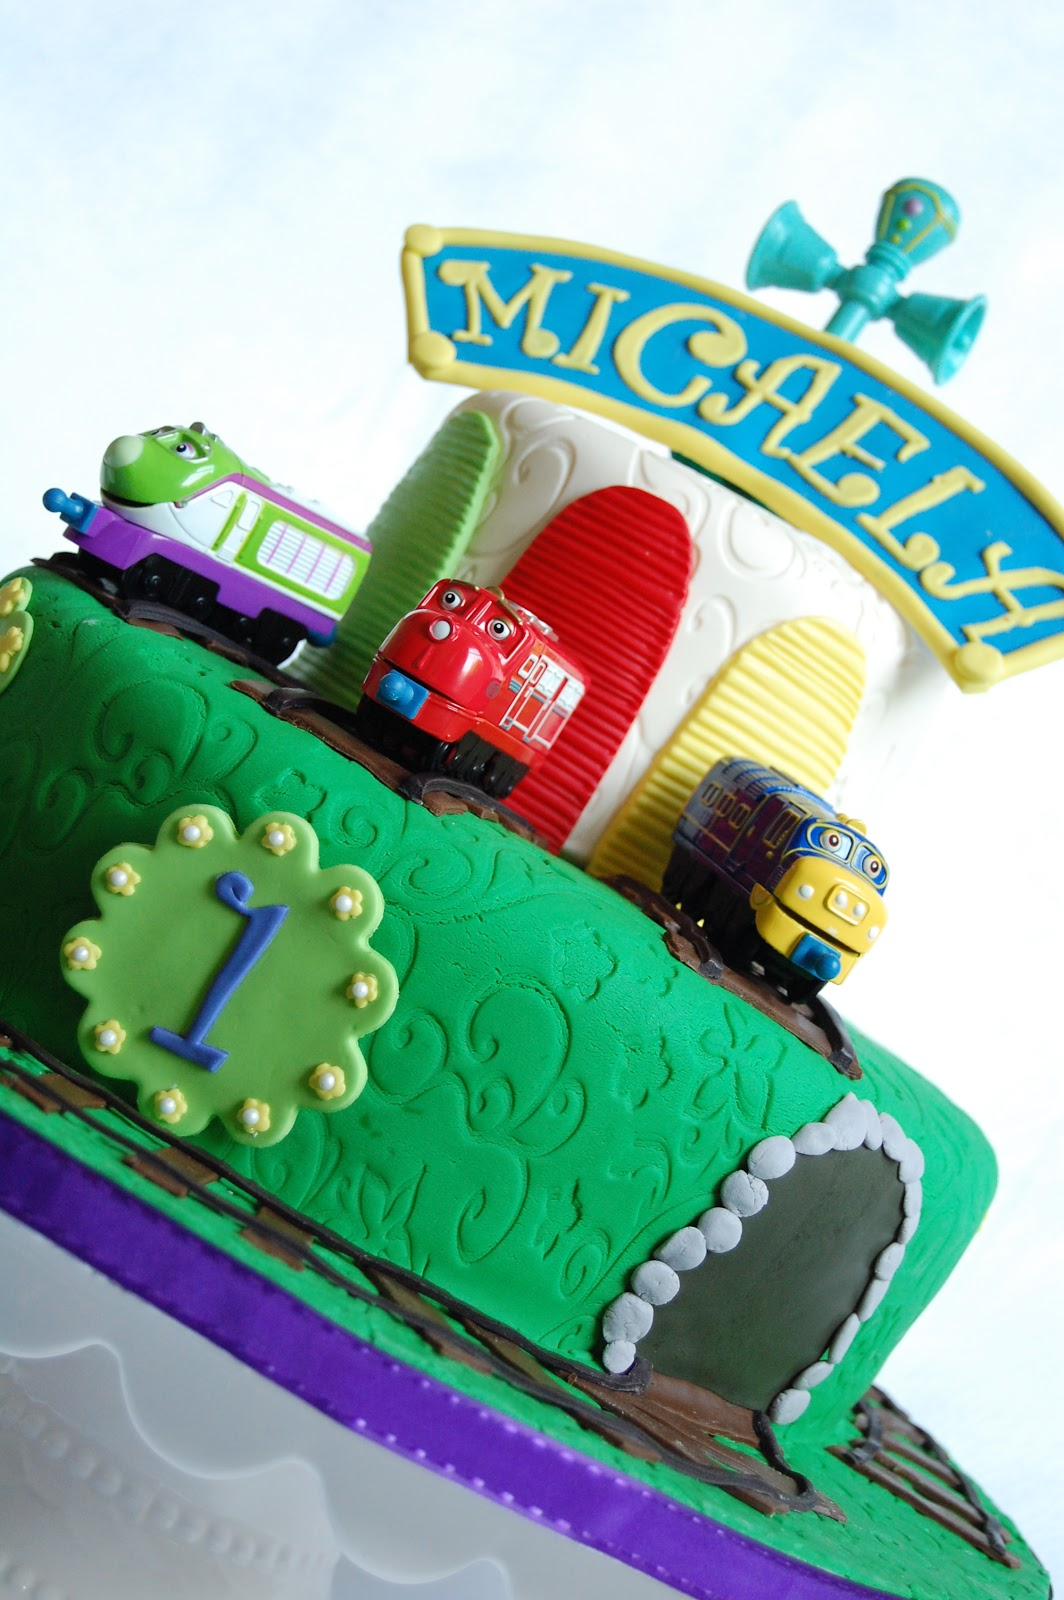 CUSTOMISED CAKES BY JEN Chuggington Cake - Chuggington birthday cake